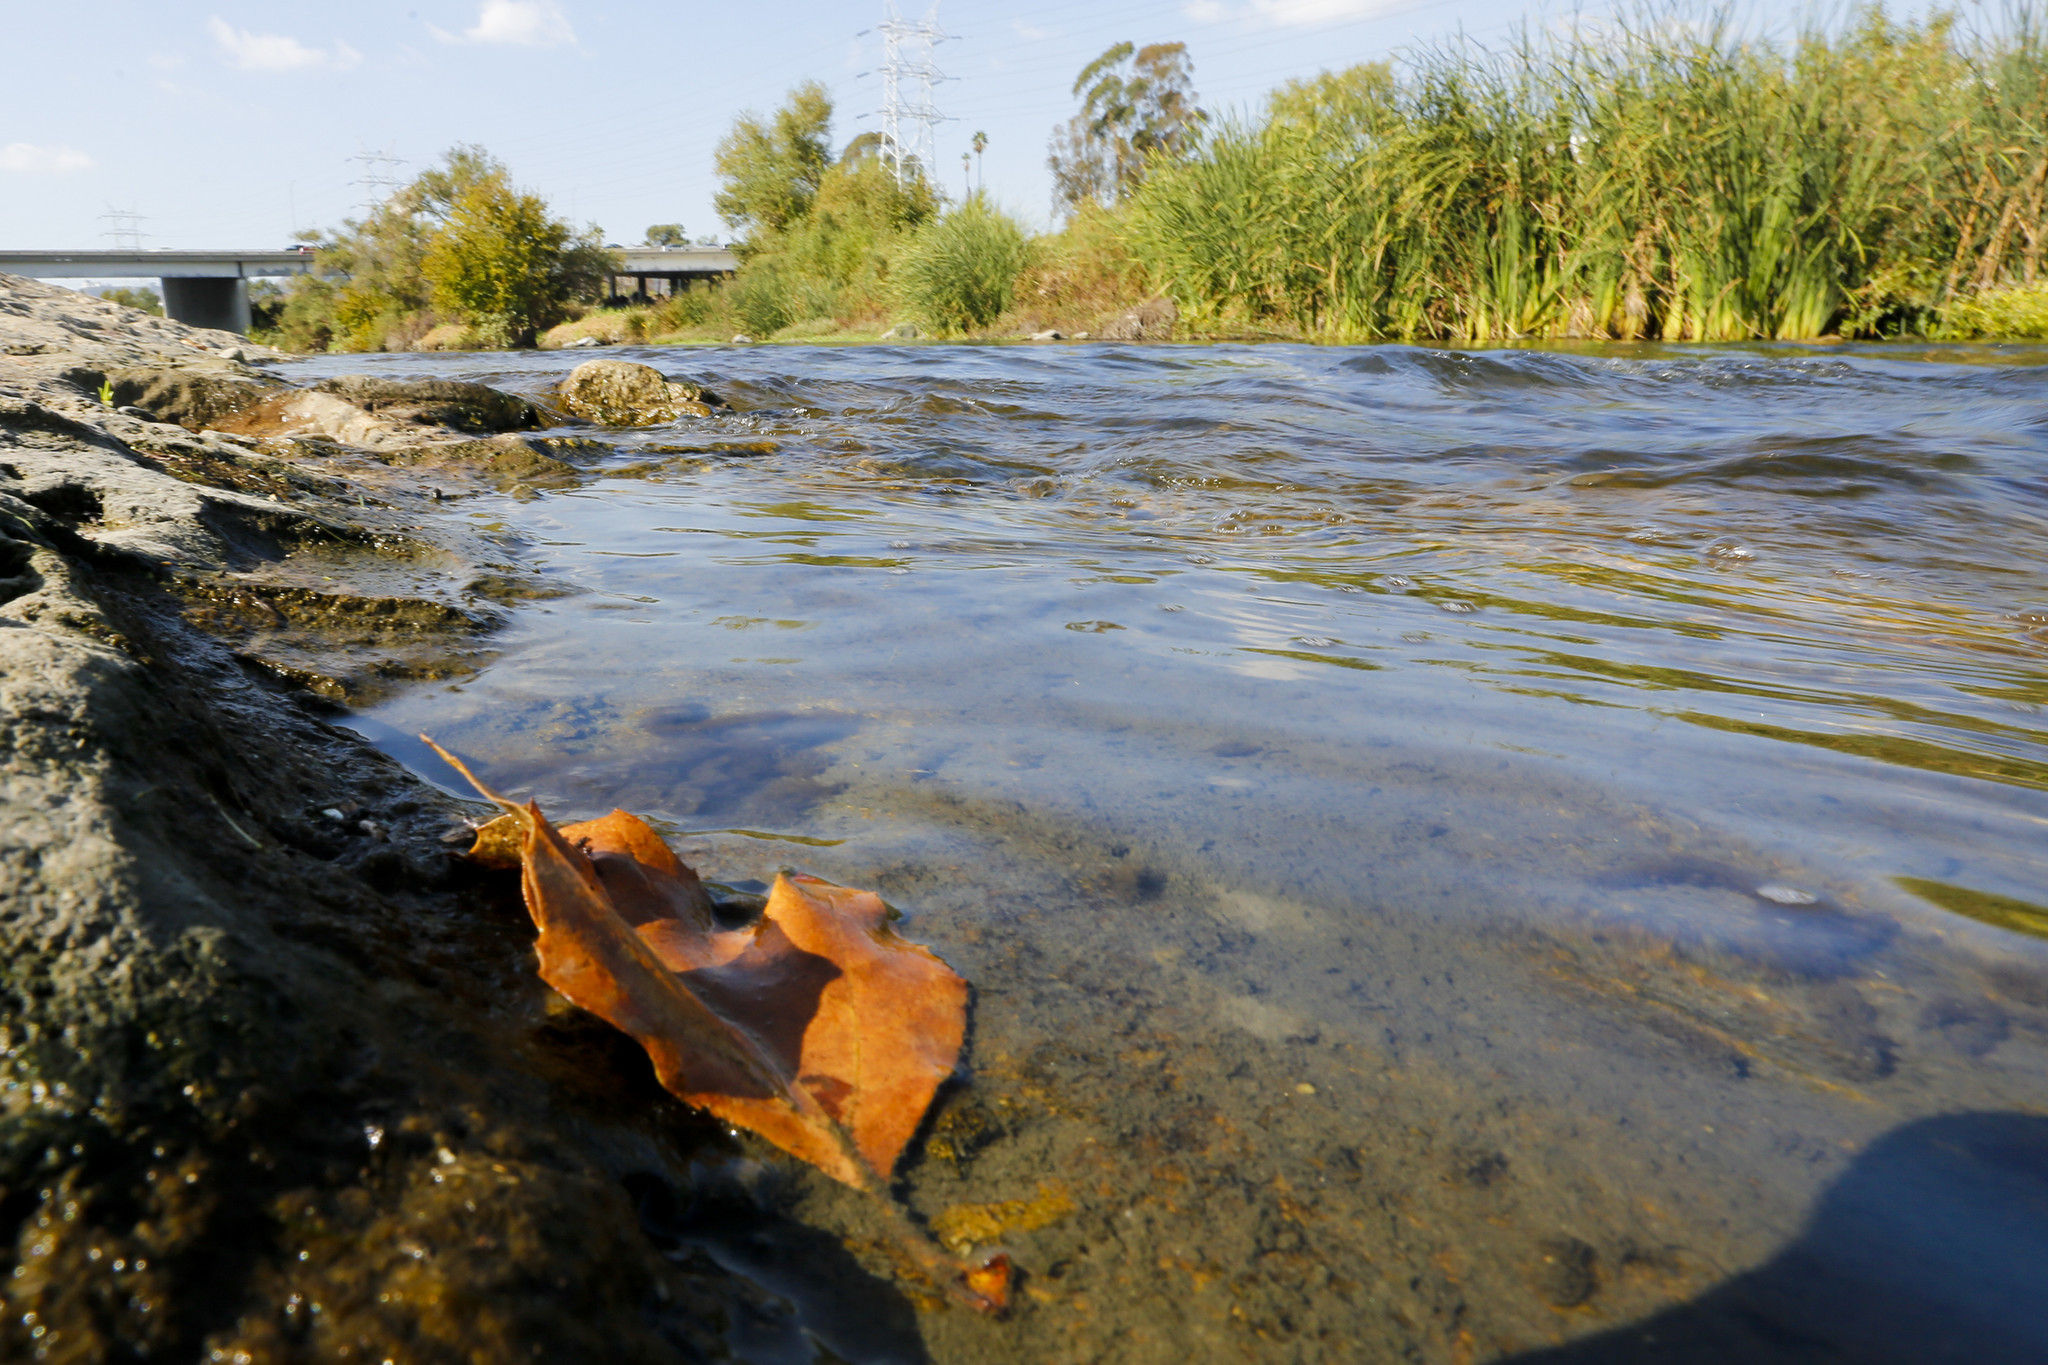 A leaf rests along the bank of the Los Angeles River in Elysian Valley.